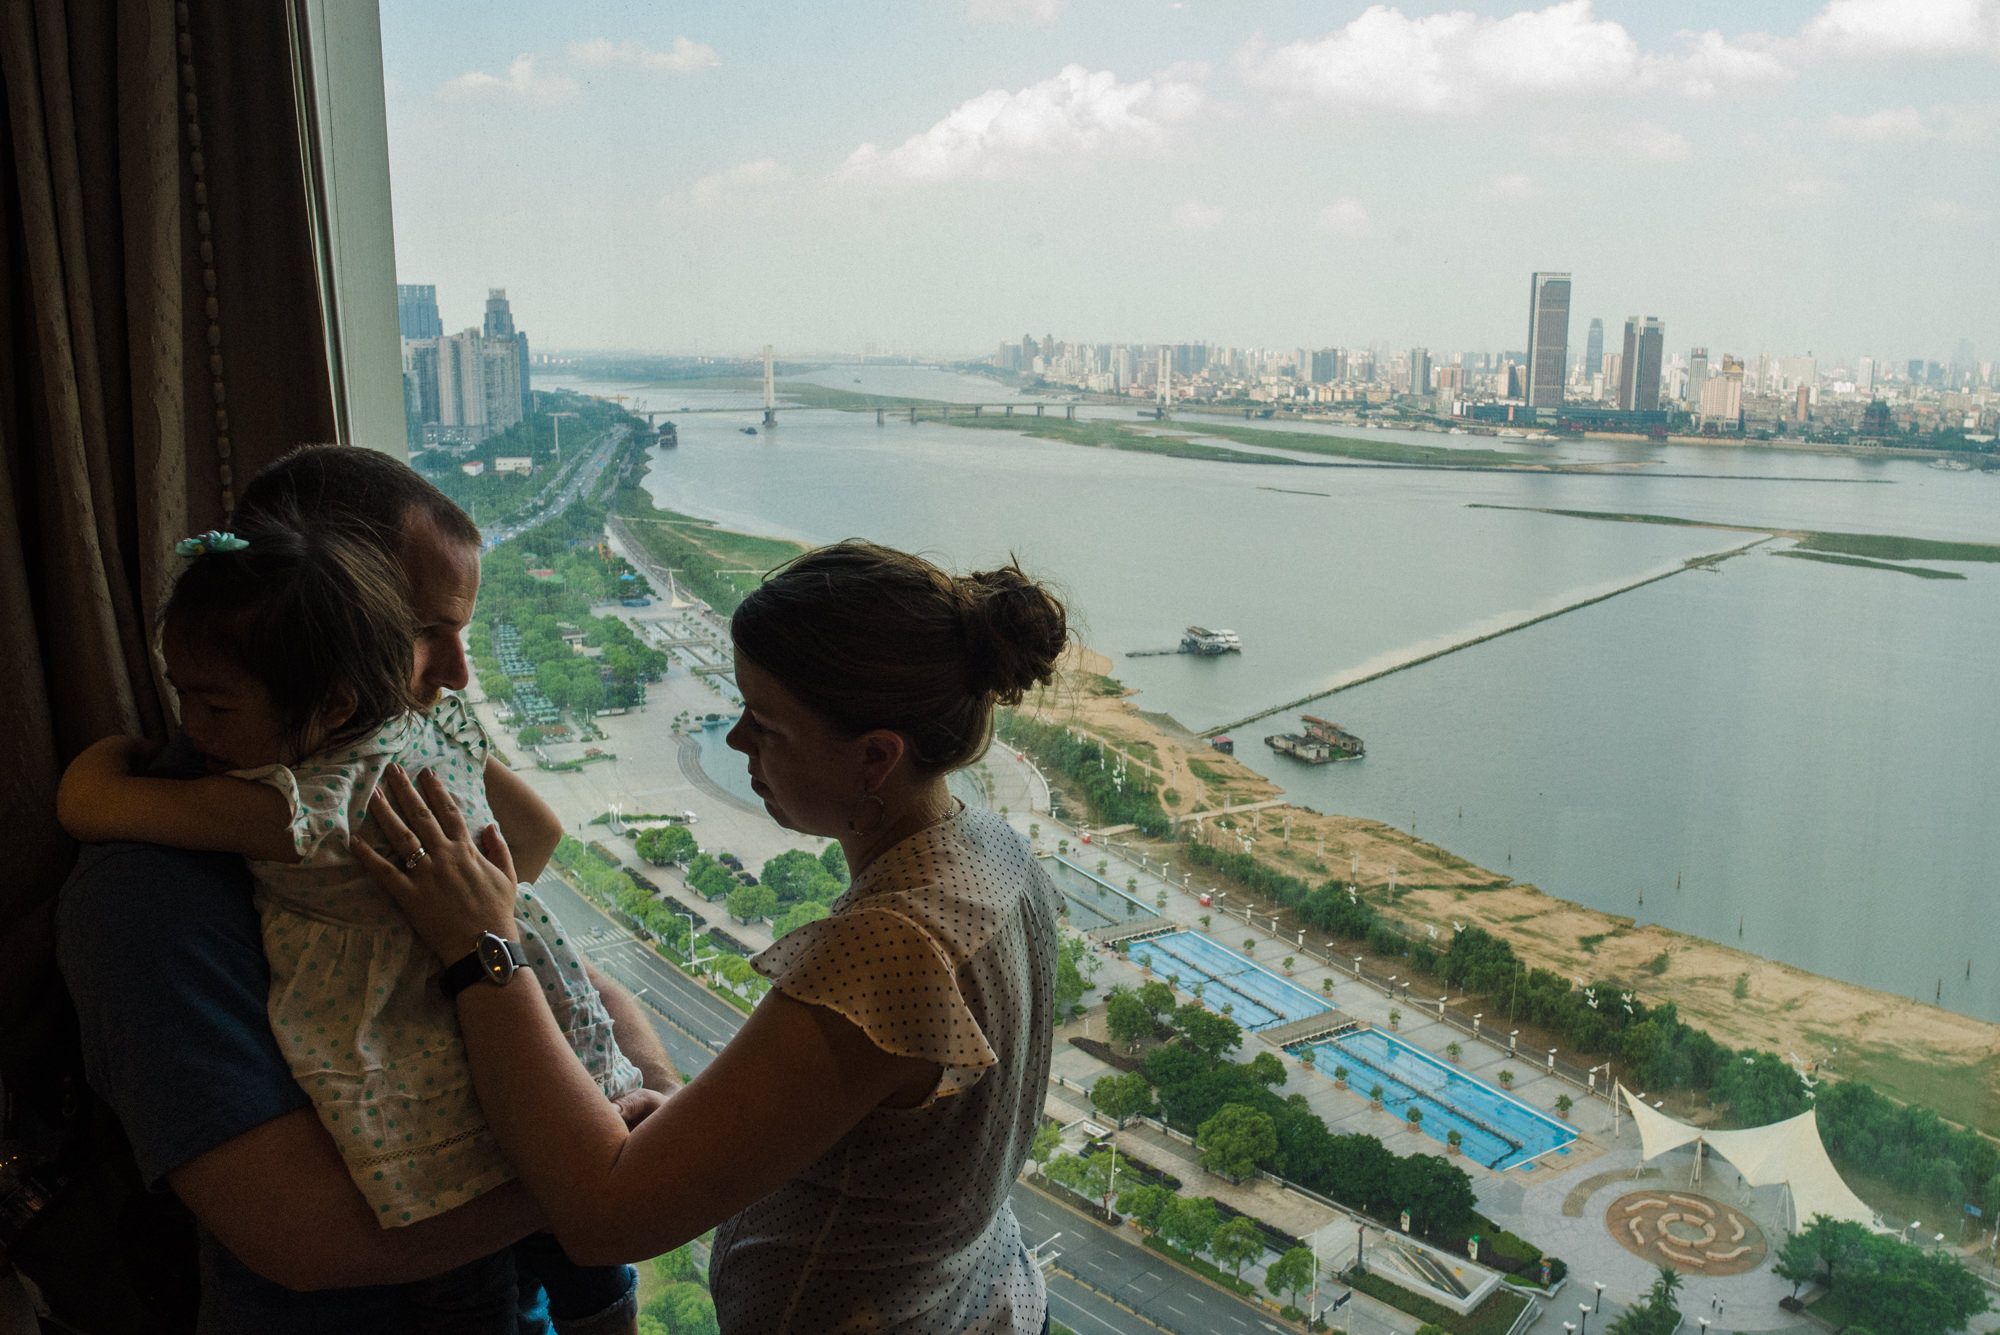 The agency official gone, Cory and Signe bring Victoria to a window looking across the Ganjiang River toward old Nanchang, calming her by showing her things within their view.